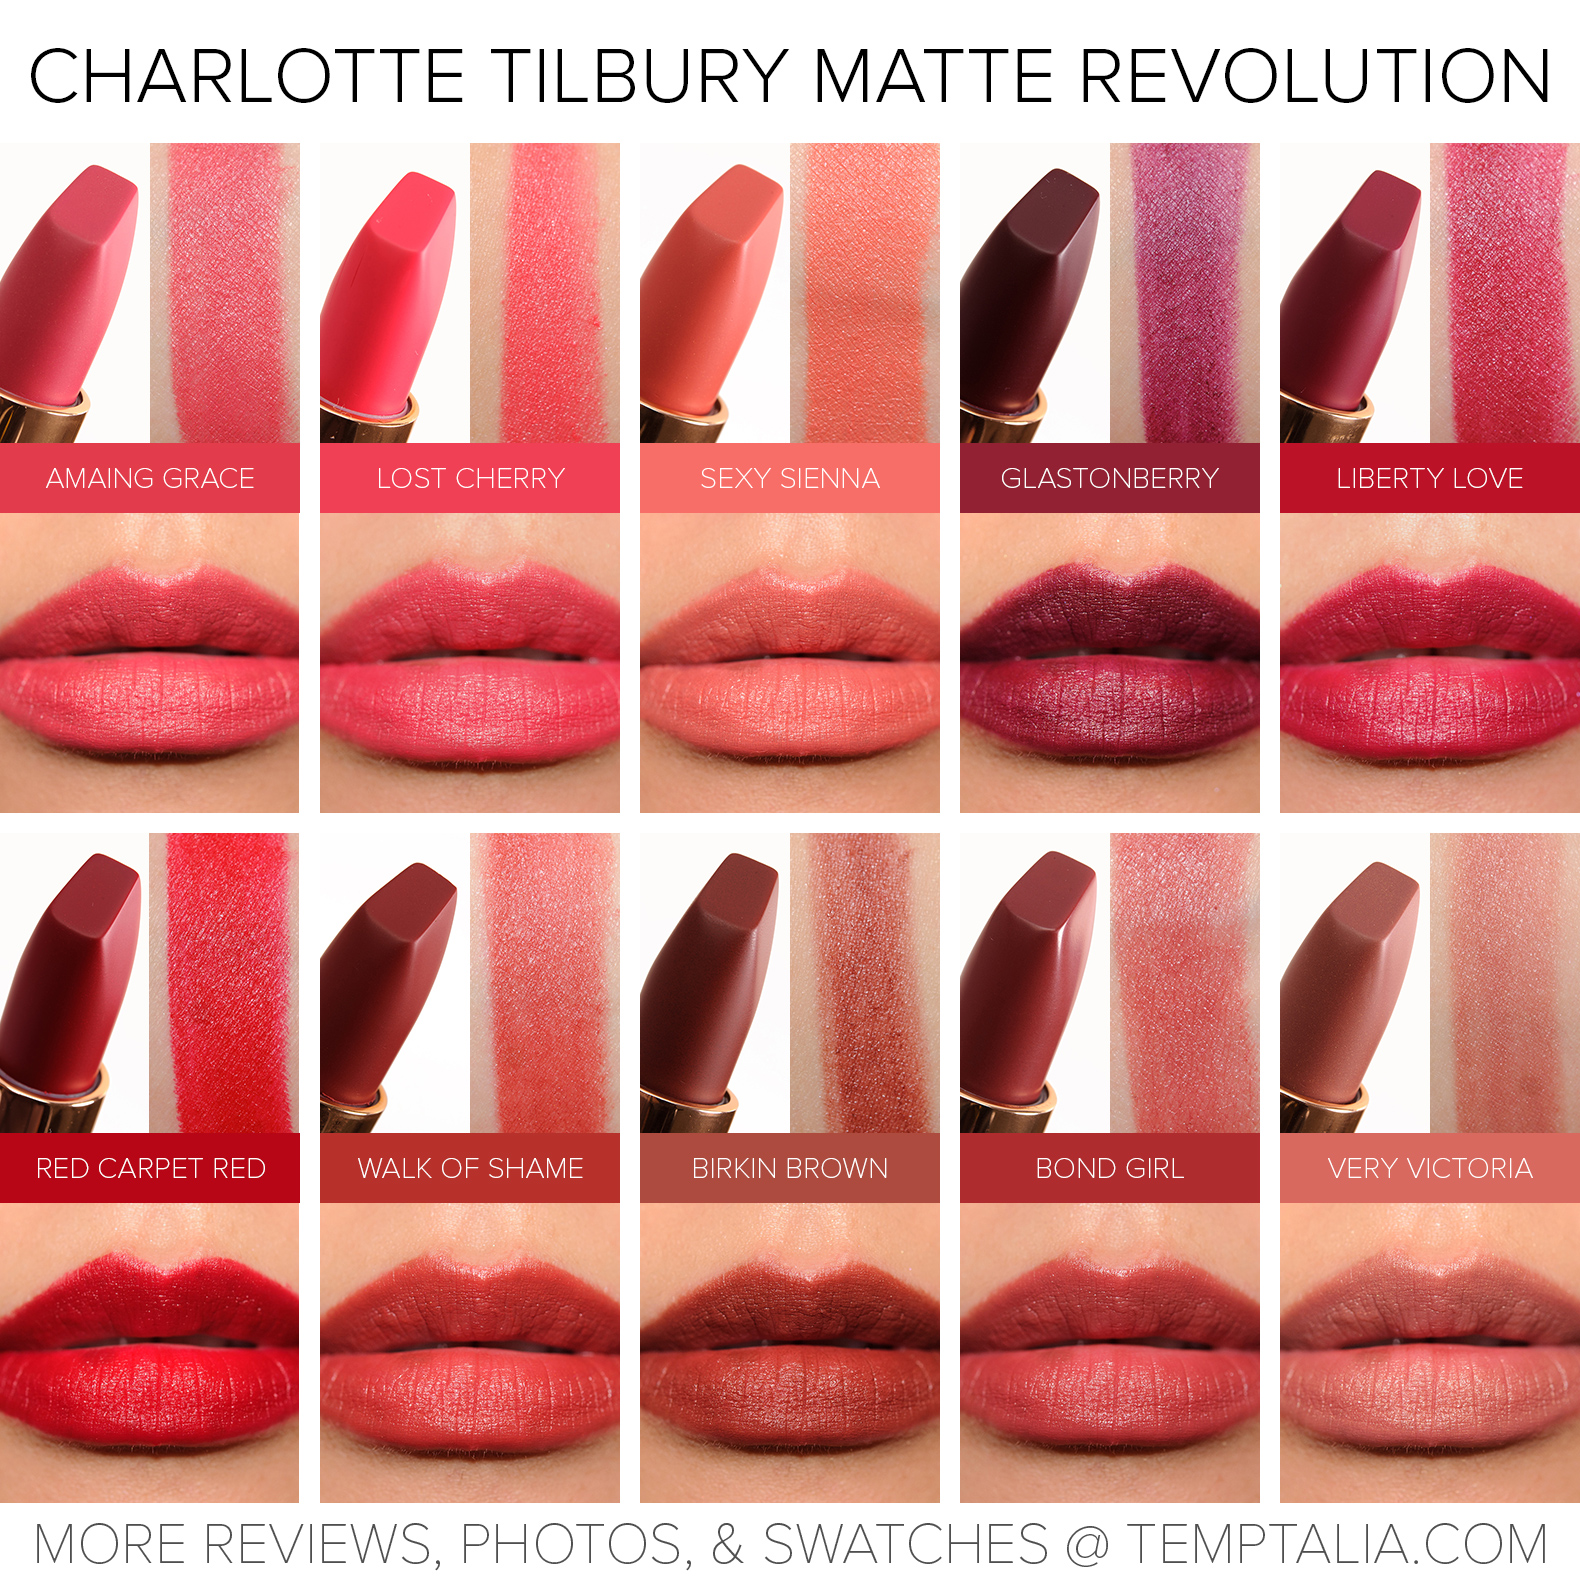 Sneak Peek: Charlotte Tilbury Matte Revolution Lipsticks Photos u0026 Swatches